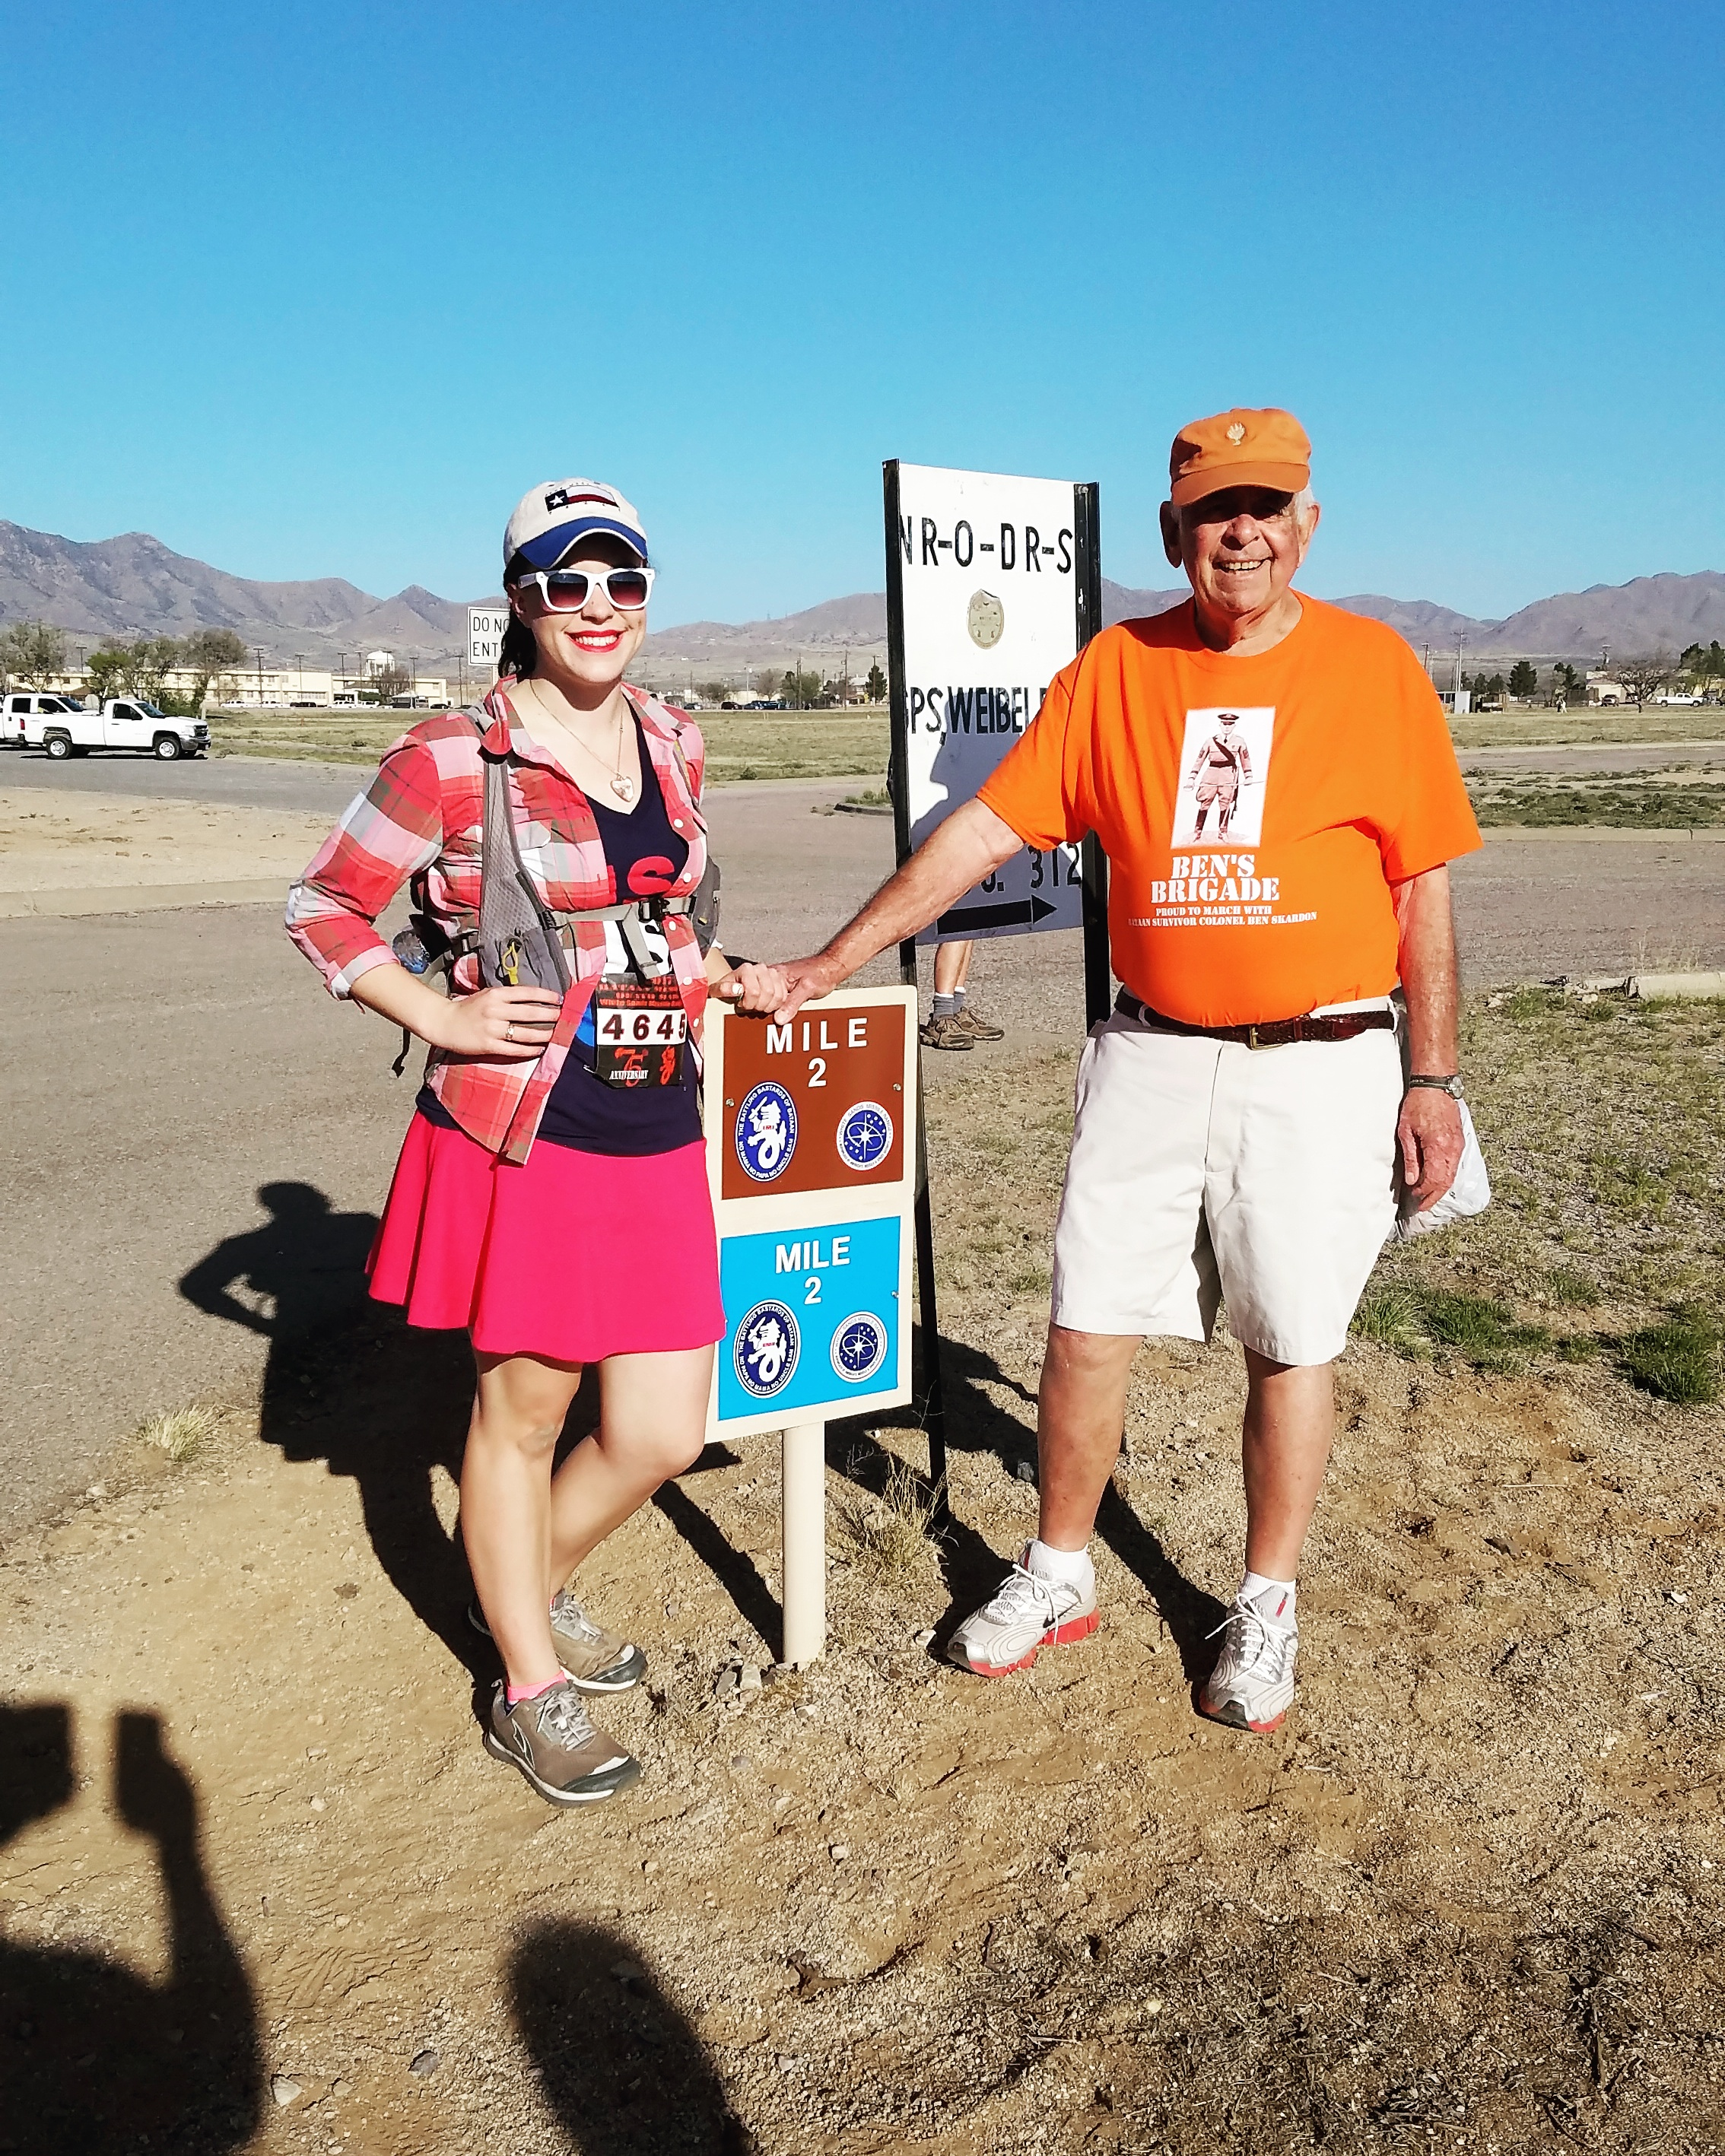 """Mile 2 was my last mile with the wonderful members of Ben's Brigade, and Col. Ben himself. Right before heading out, I had to get a quick photo with the mile-marker, and longtime friend of Col. Ben, Steve Griffith. Friends for over 60 years, the secret? """"Keeping in touch. You have to stay in touch."""""""